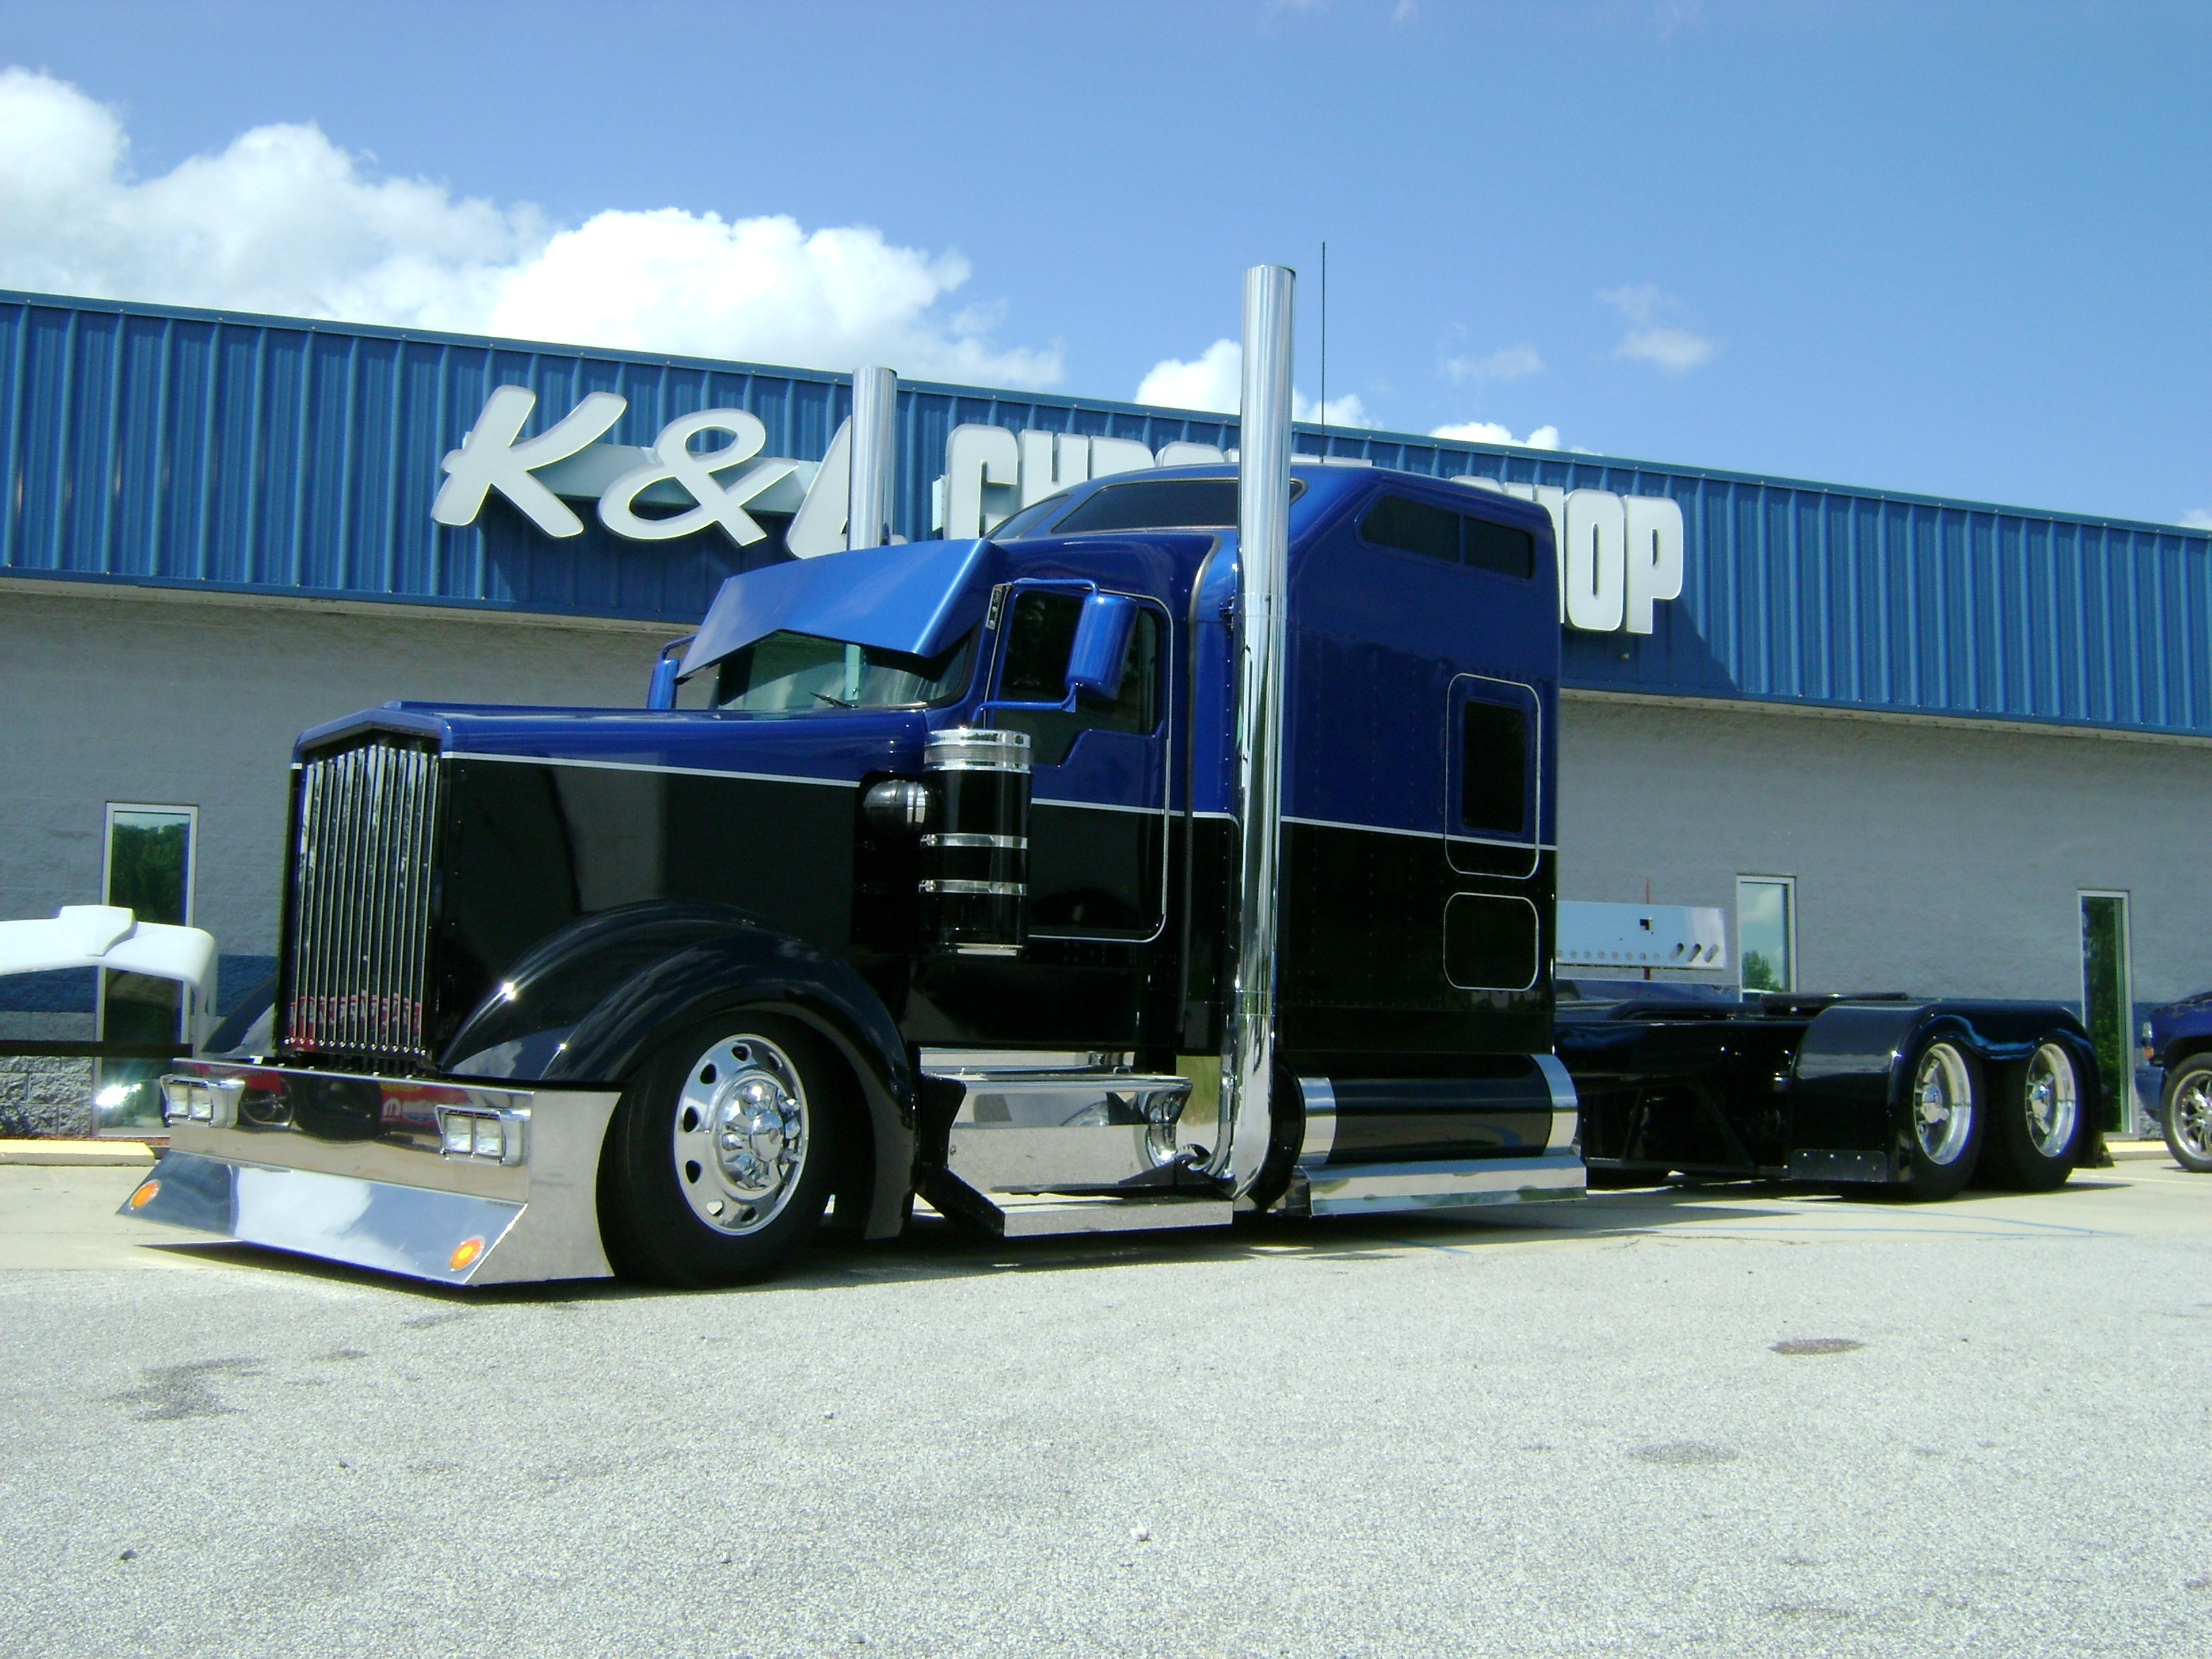 custom built and painted kenworth w900. | custom rigz | pinterest